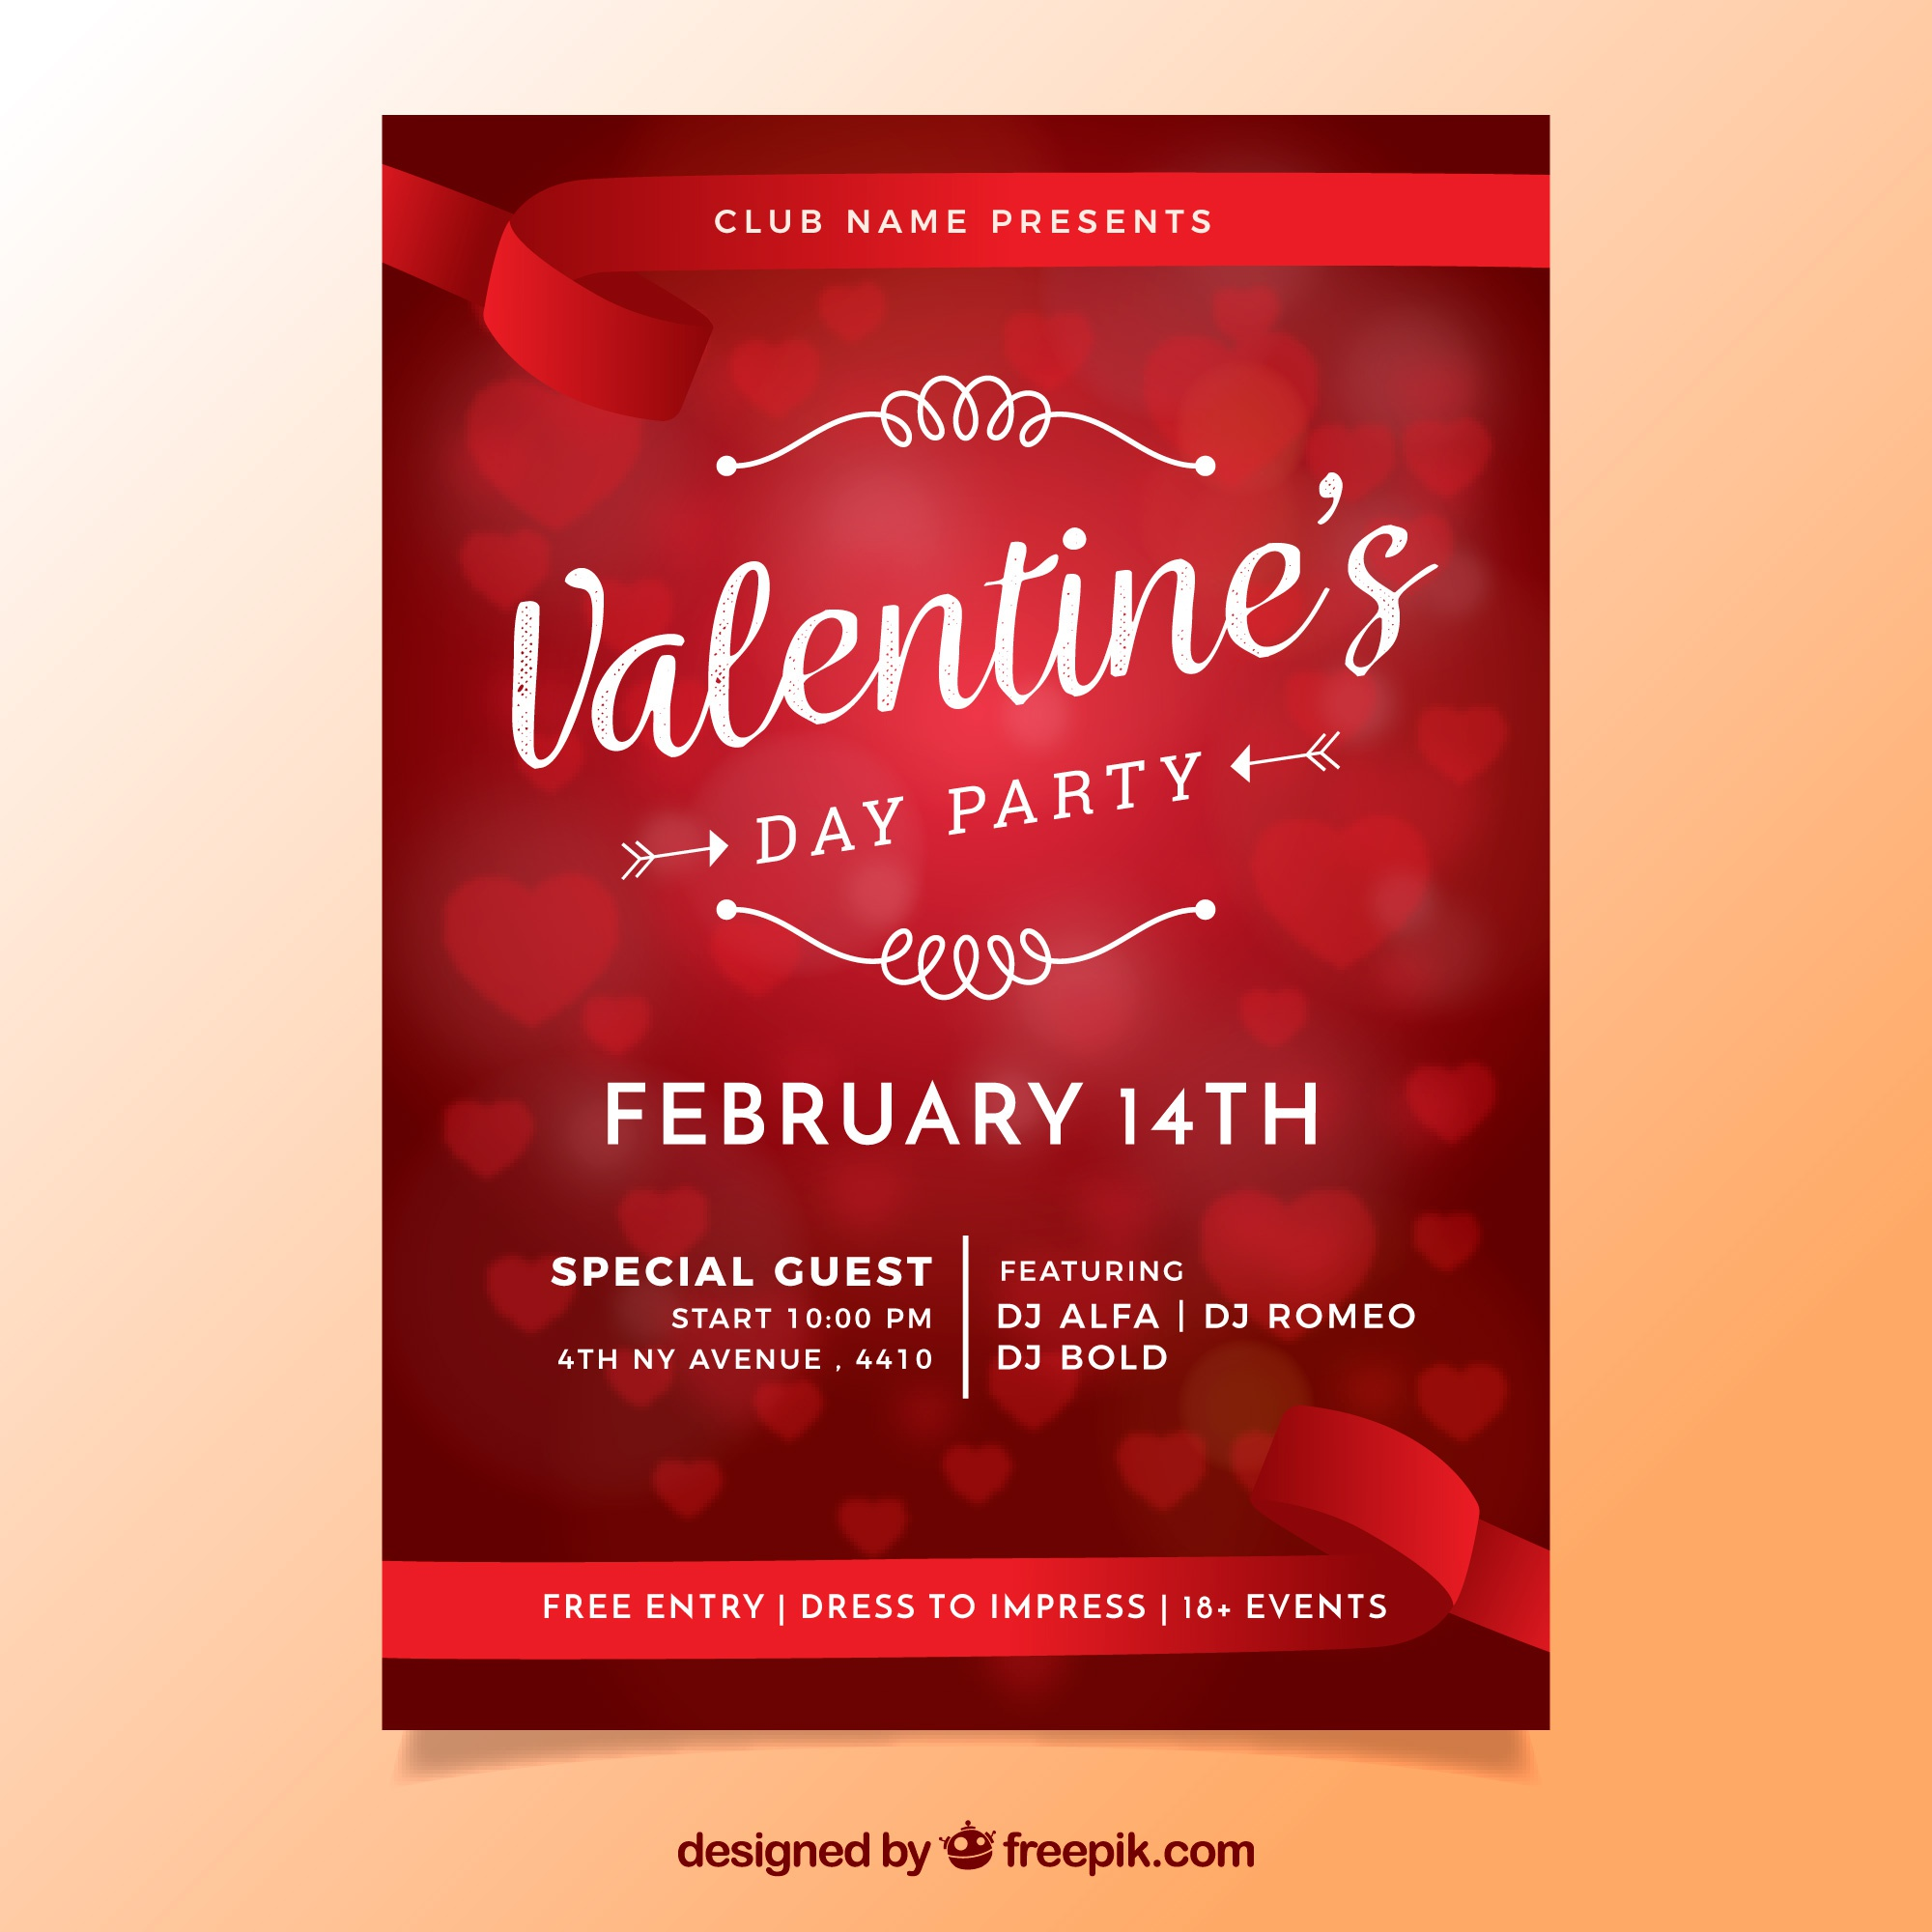 Blurred valentine's day flyer / poster with hearts